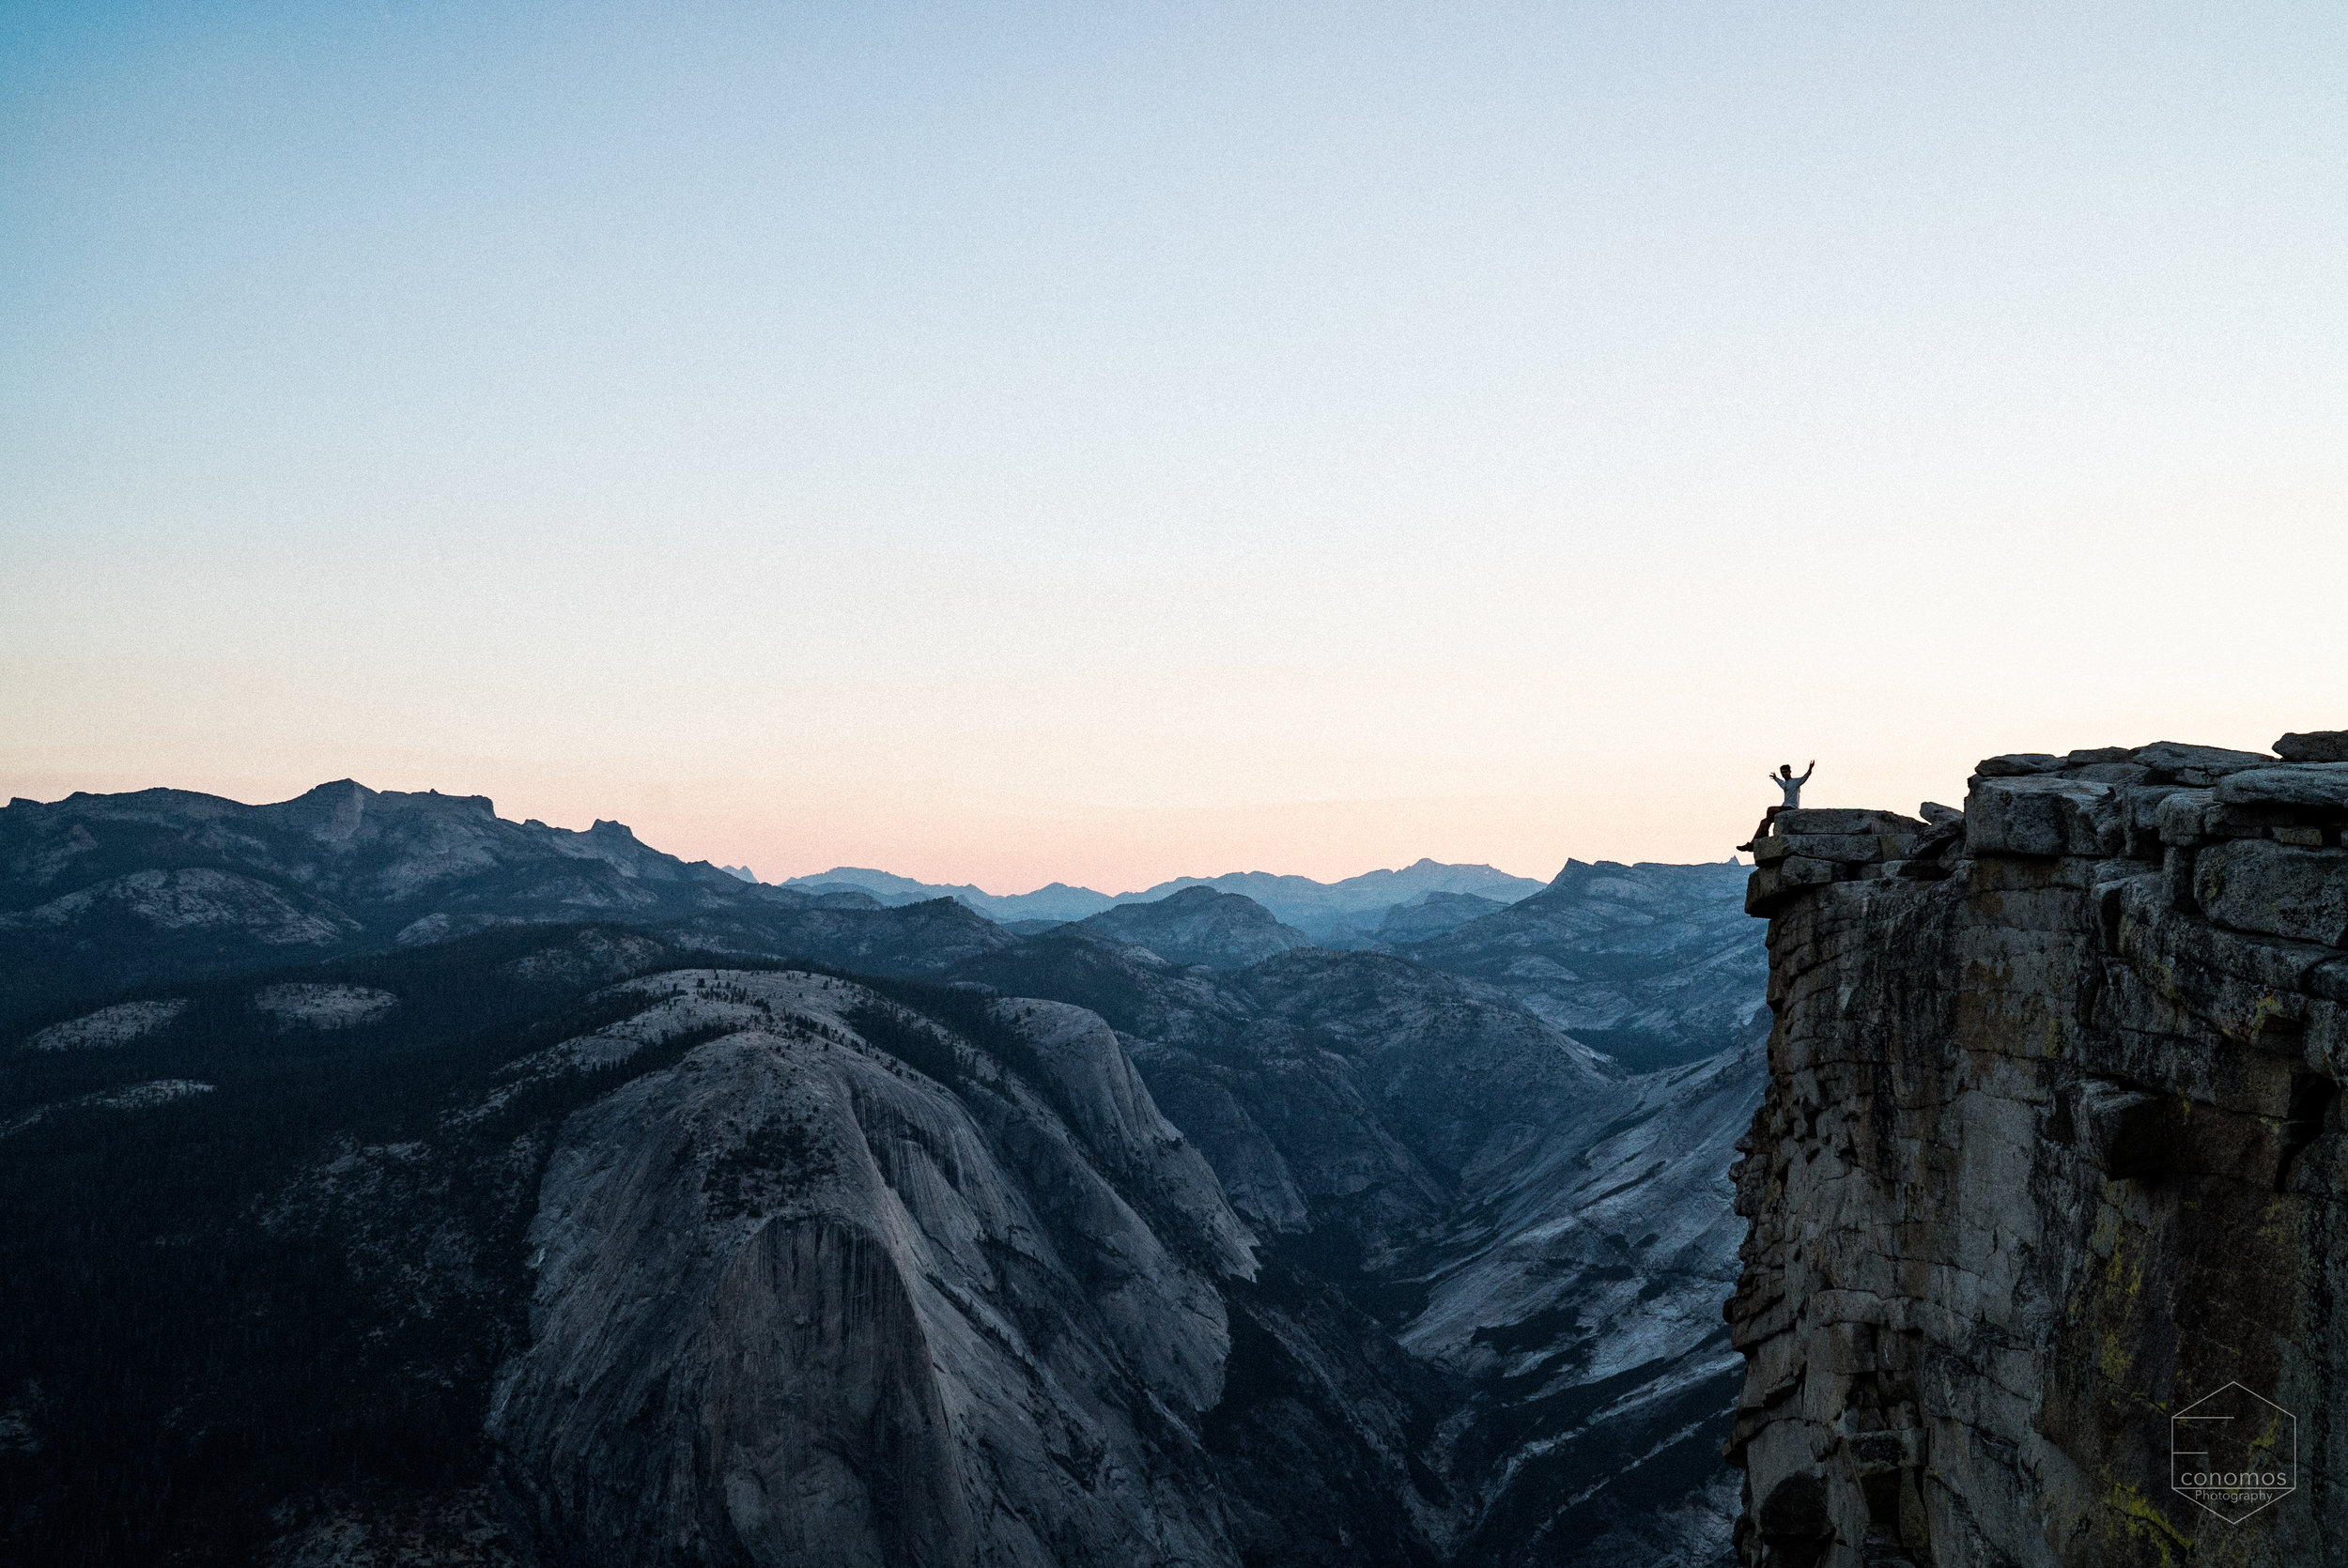 Yours truly on Half Dome, Yosemite